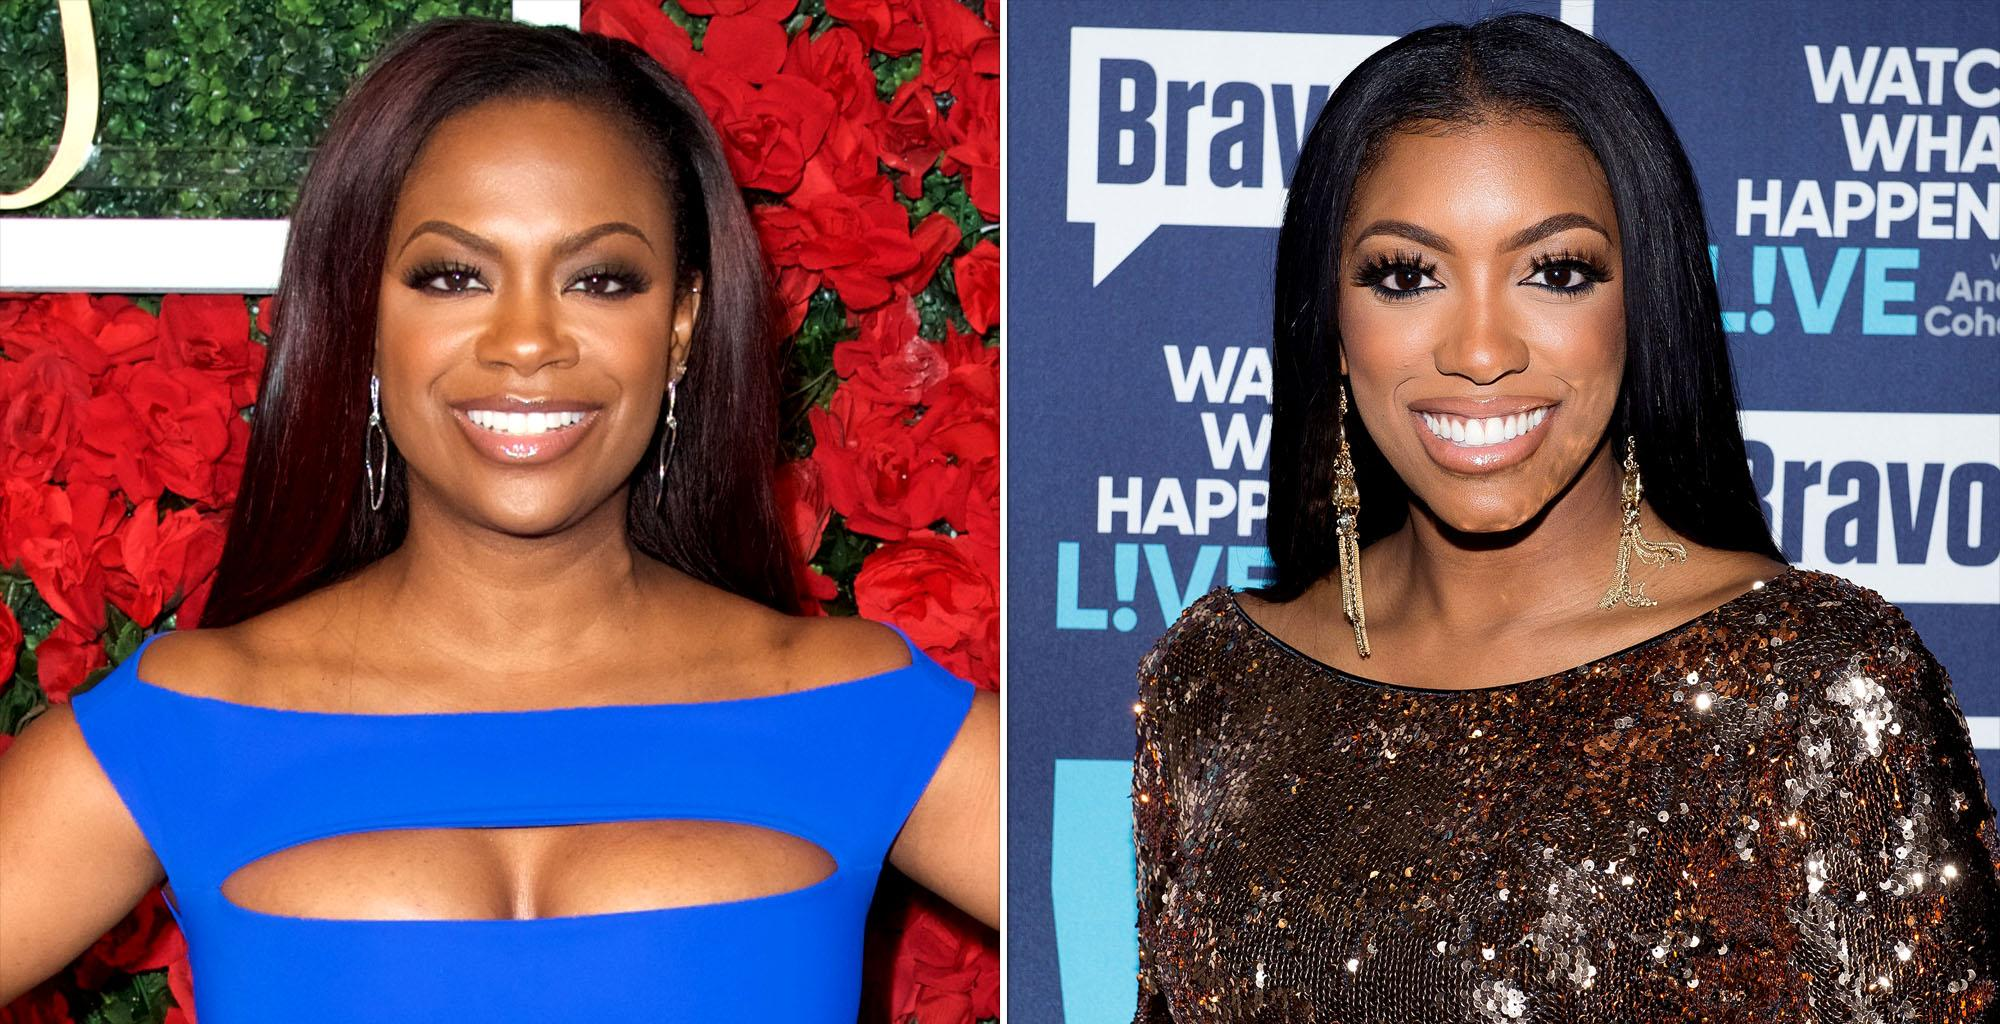 Kandi Burruss And Porsha Williams Are Gushing Over Shamea Morton For Her Birthday With Gorgeous Pics And Emotional Messages